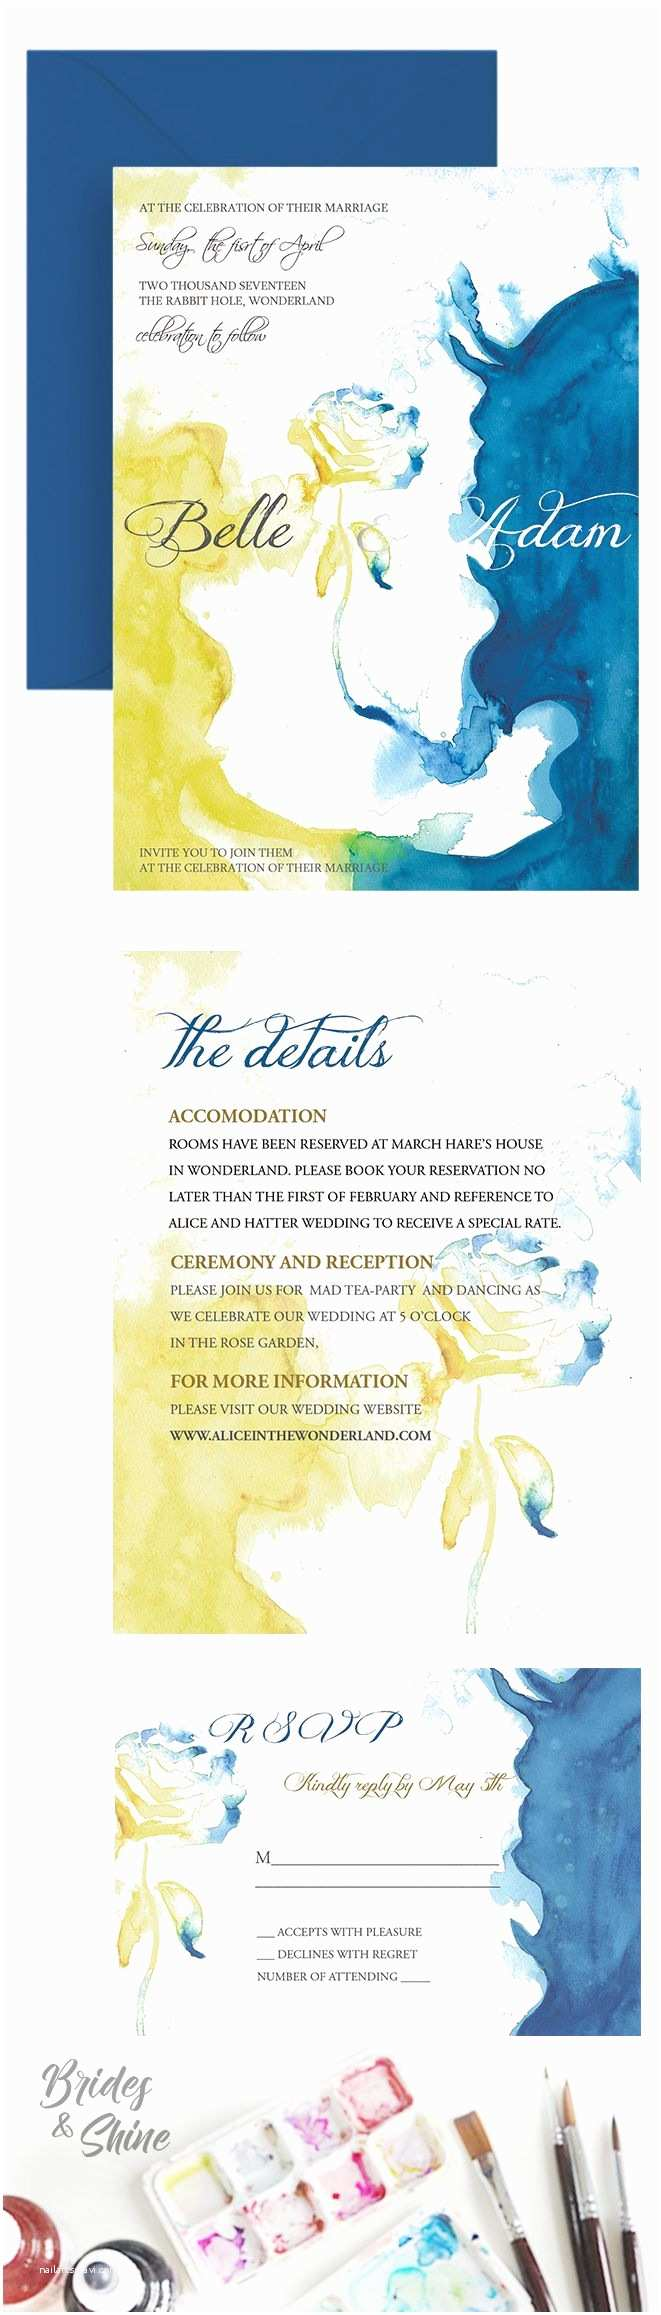 Beauty and the Beast Inspired Wedding Invitations 25 Best Ideas About Disney Wedding Invitations On Pinterest